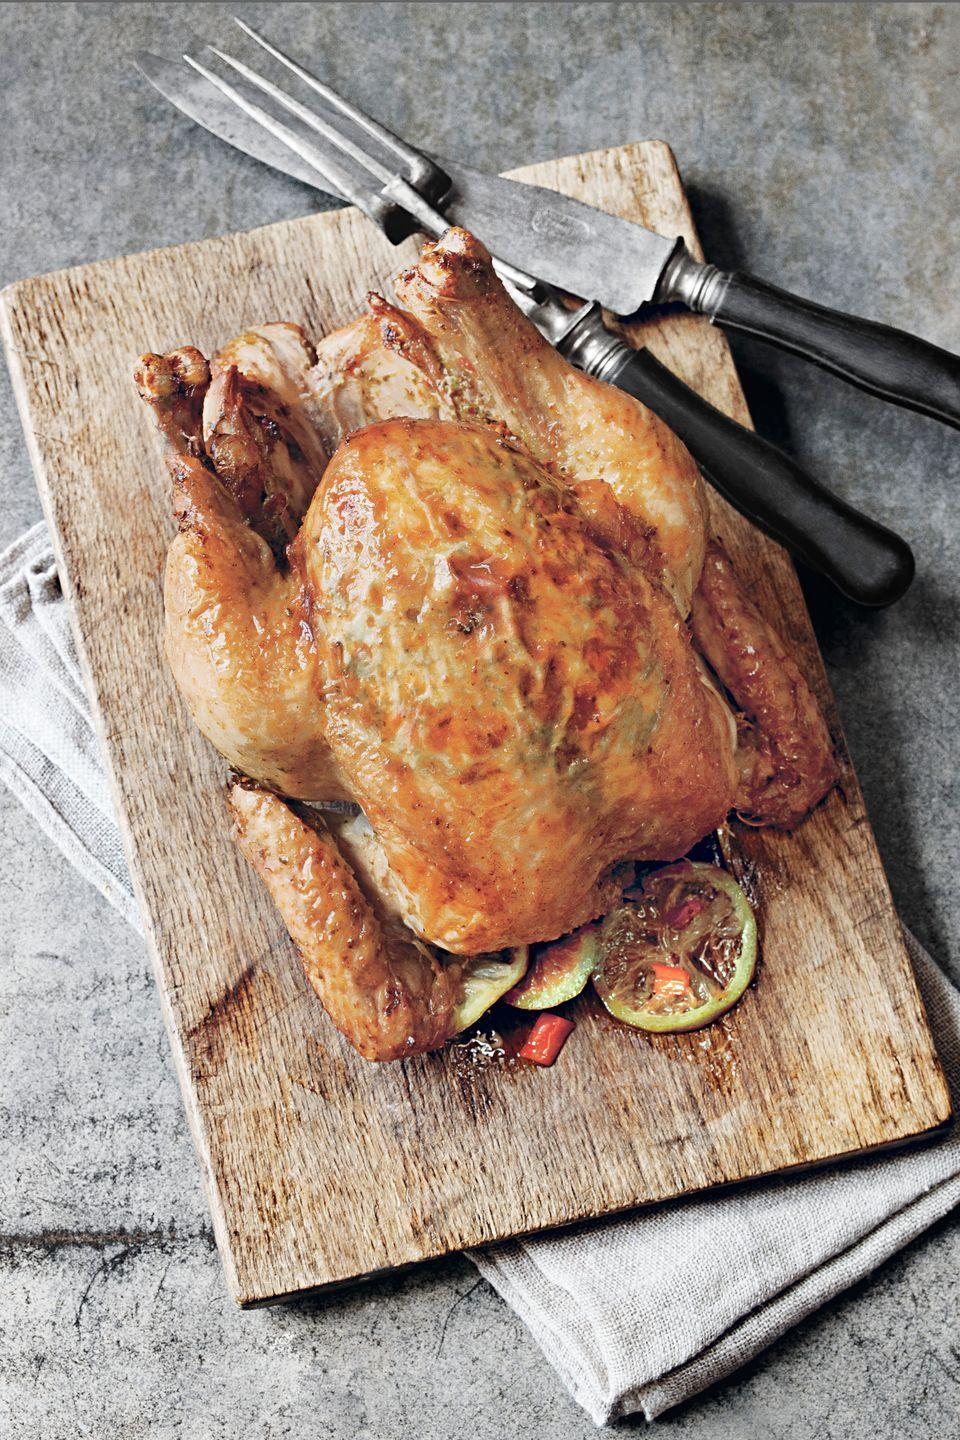 "<p>Succulent, golden-skinned chicken with cooked apples makes a memorable and mouthwatering meal.</p><p><strong><a href=""https://www.countryliving.com/food-drinks/recipes/a1041/apple-sage-roastedchicken-panjuices-3148/"" rel=""nofollow noopener"" target=""_blank"" data-ylk=""slk:Get the recipe."" class=""link rapid-noclick-resp"">Get the recipe.</a></strong></p>"